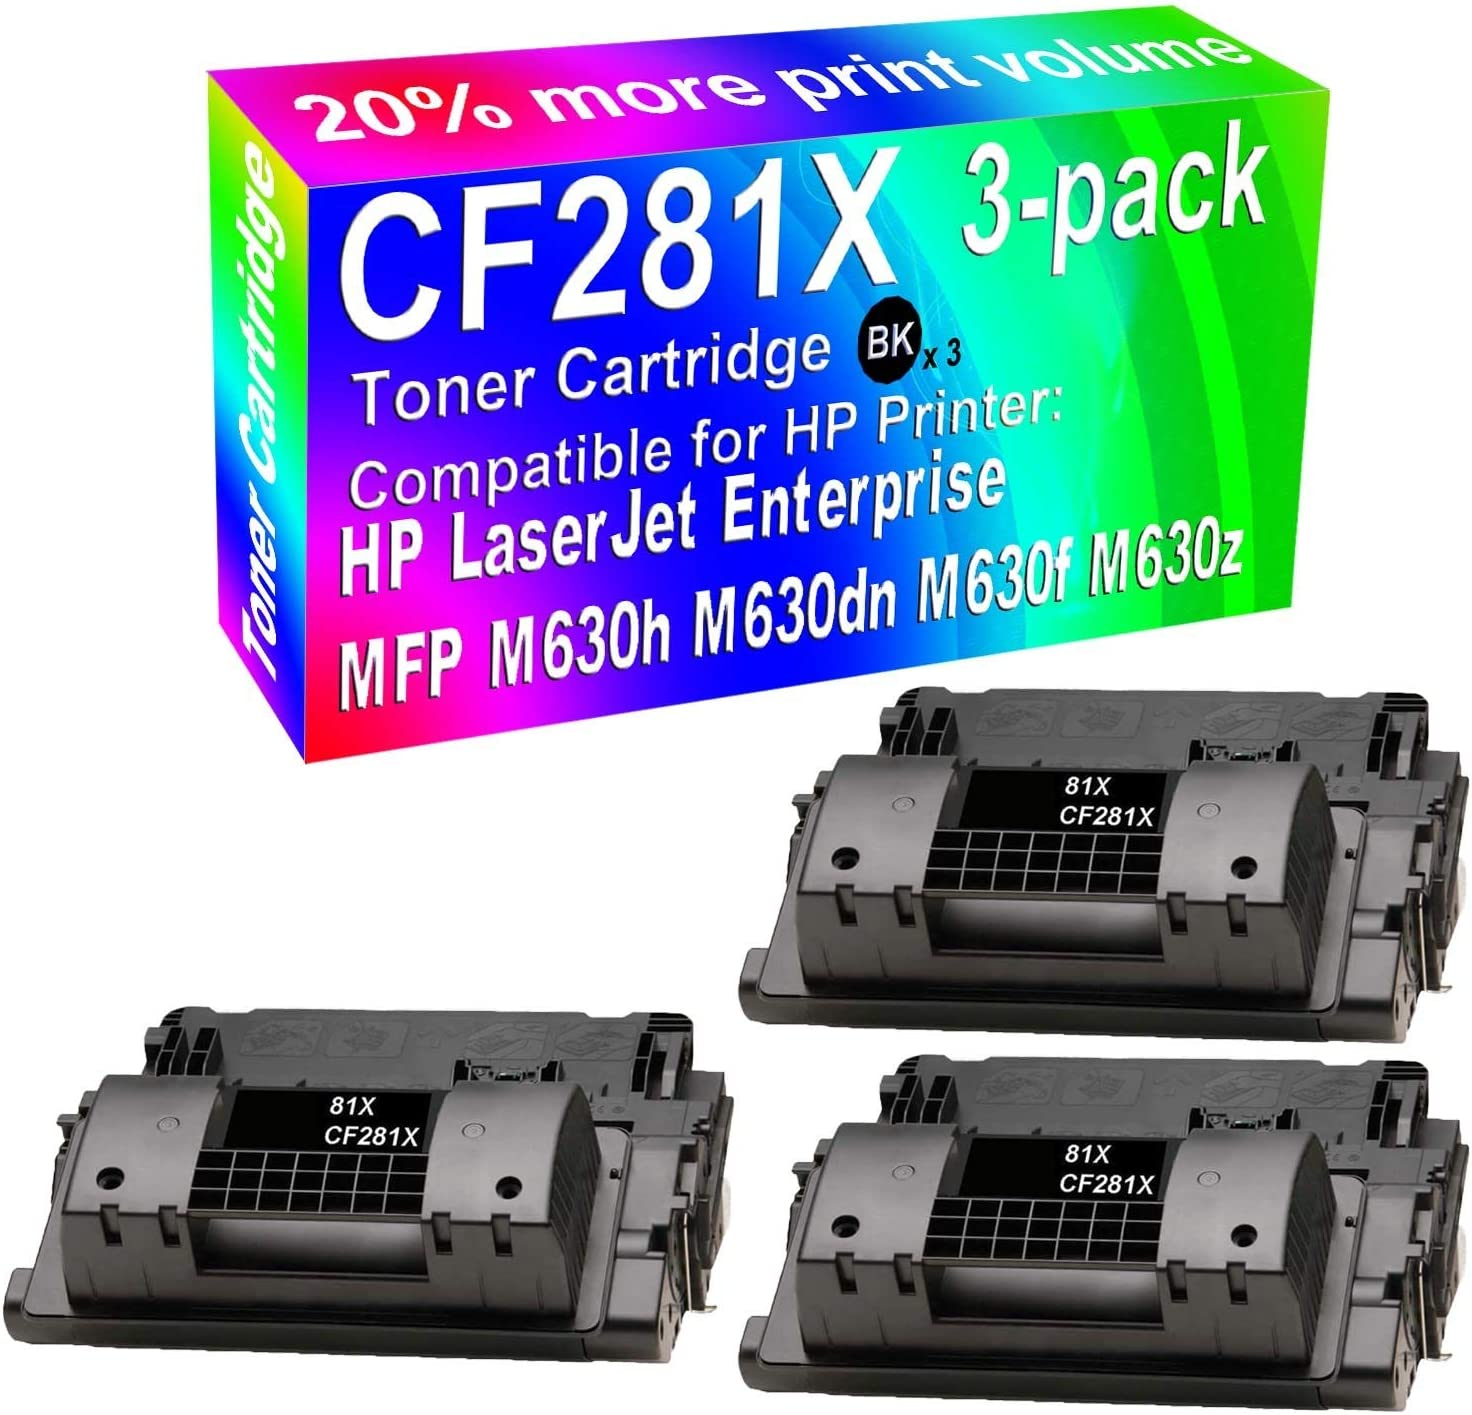 3-Pack (Black) Compatible High Yield CF281X Toner Cartridge use for HP M118dw M630dn M630f M630z Printer